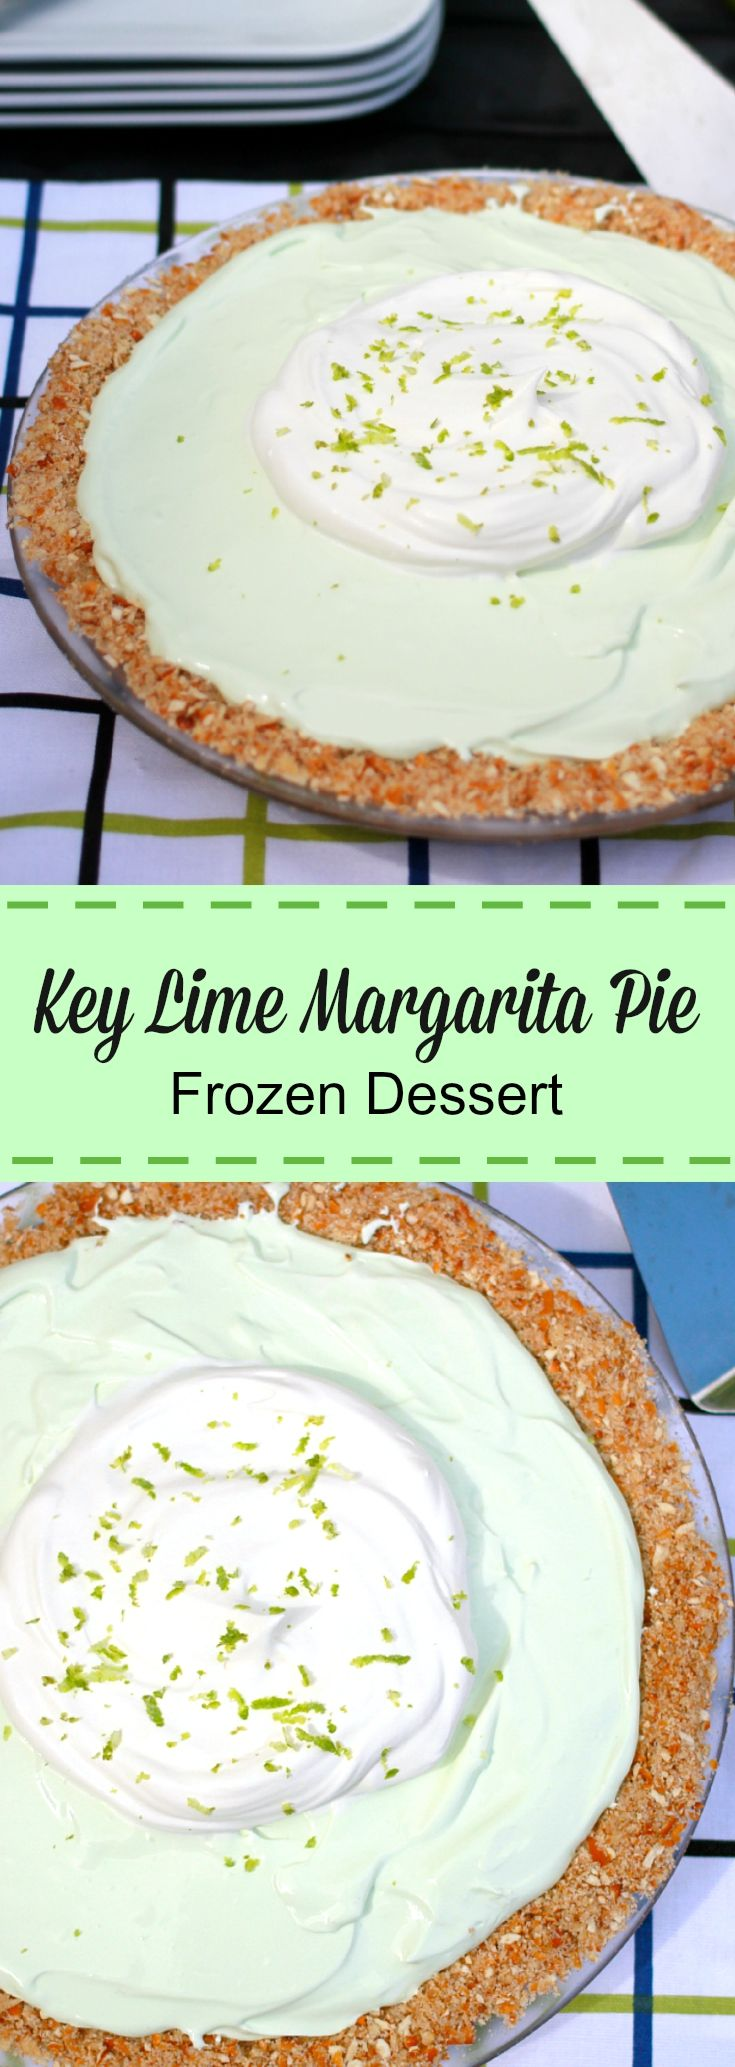 Key Lime Margarita Pie is the ideal easy summer {frozen} dessert. Simple to make and tastes just like lime ice cream, without the excess calories.